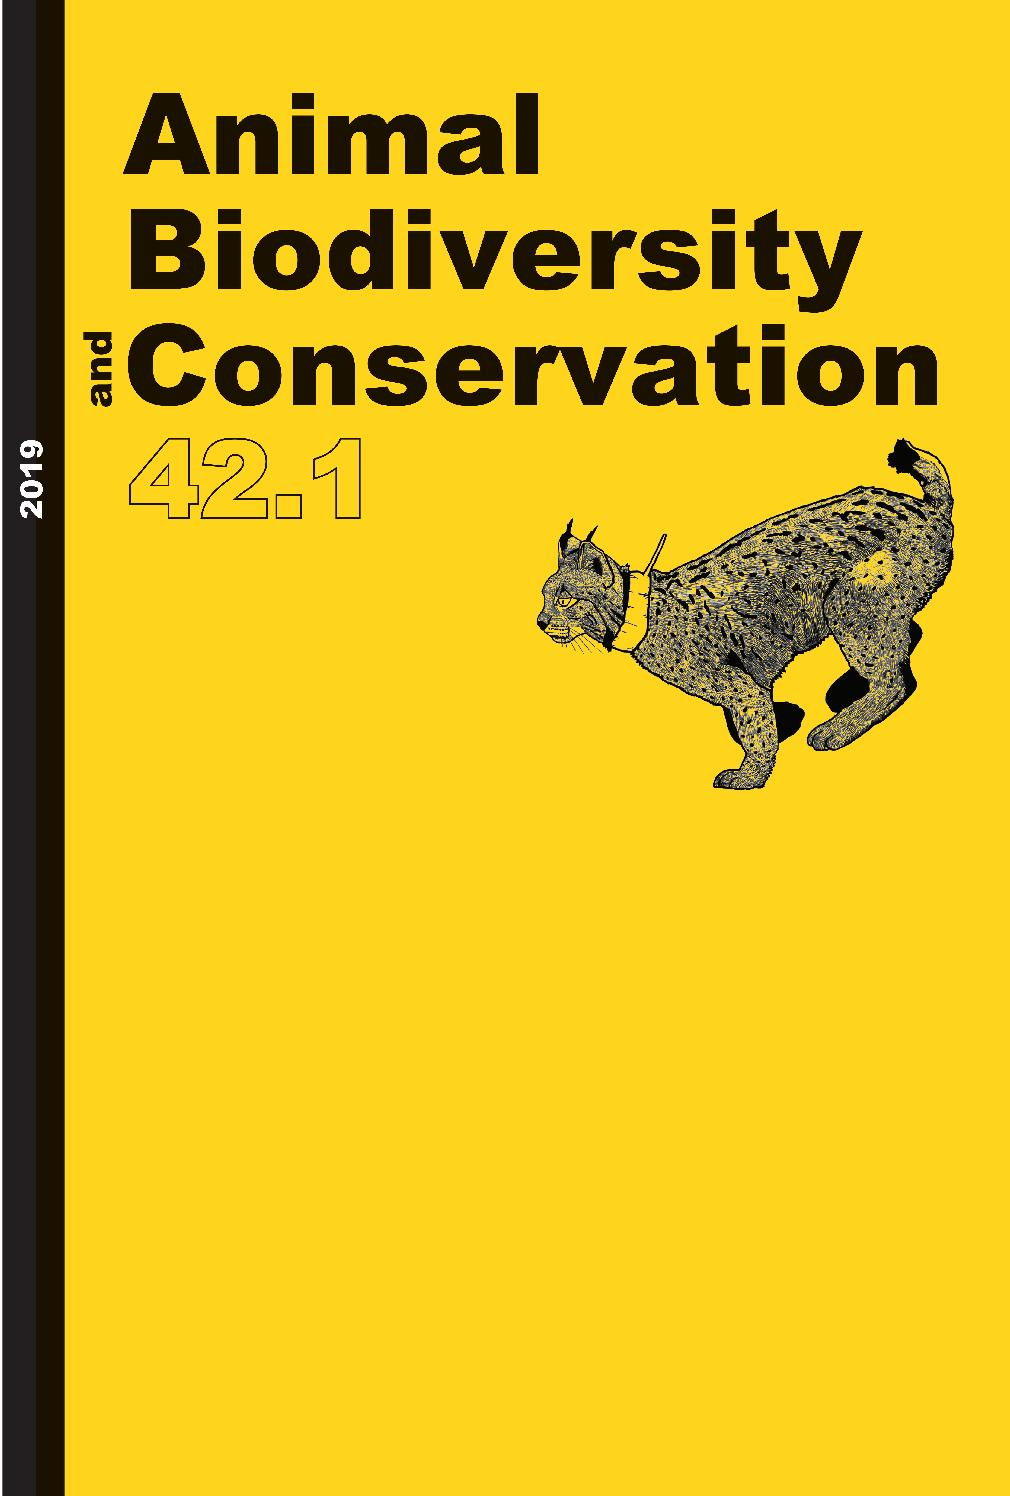 Animal Biodiversity and Conservation 42 1 2019 by Museu